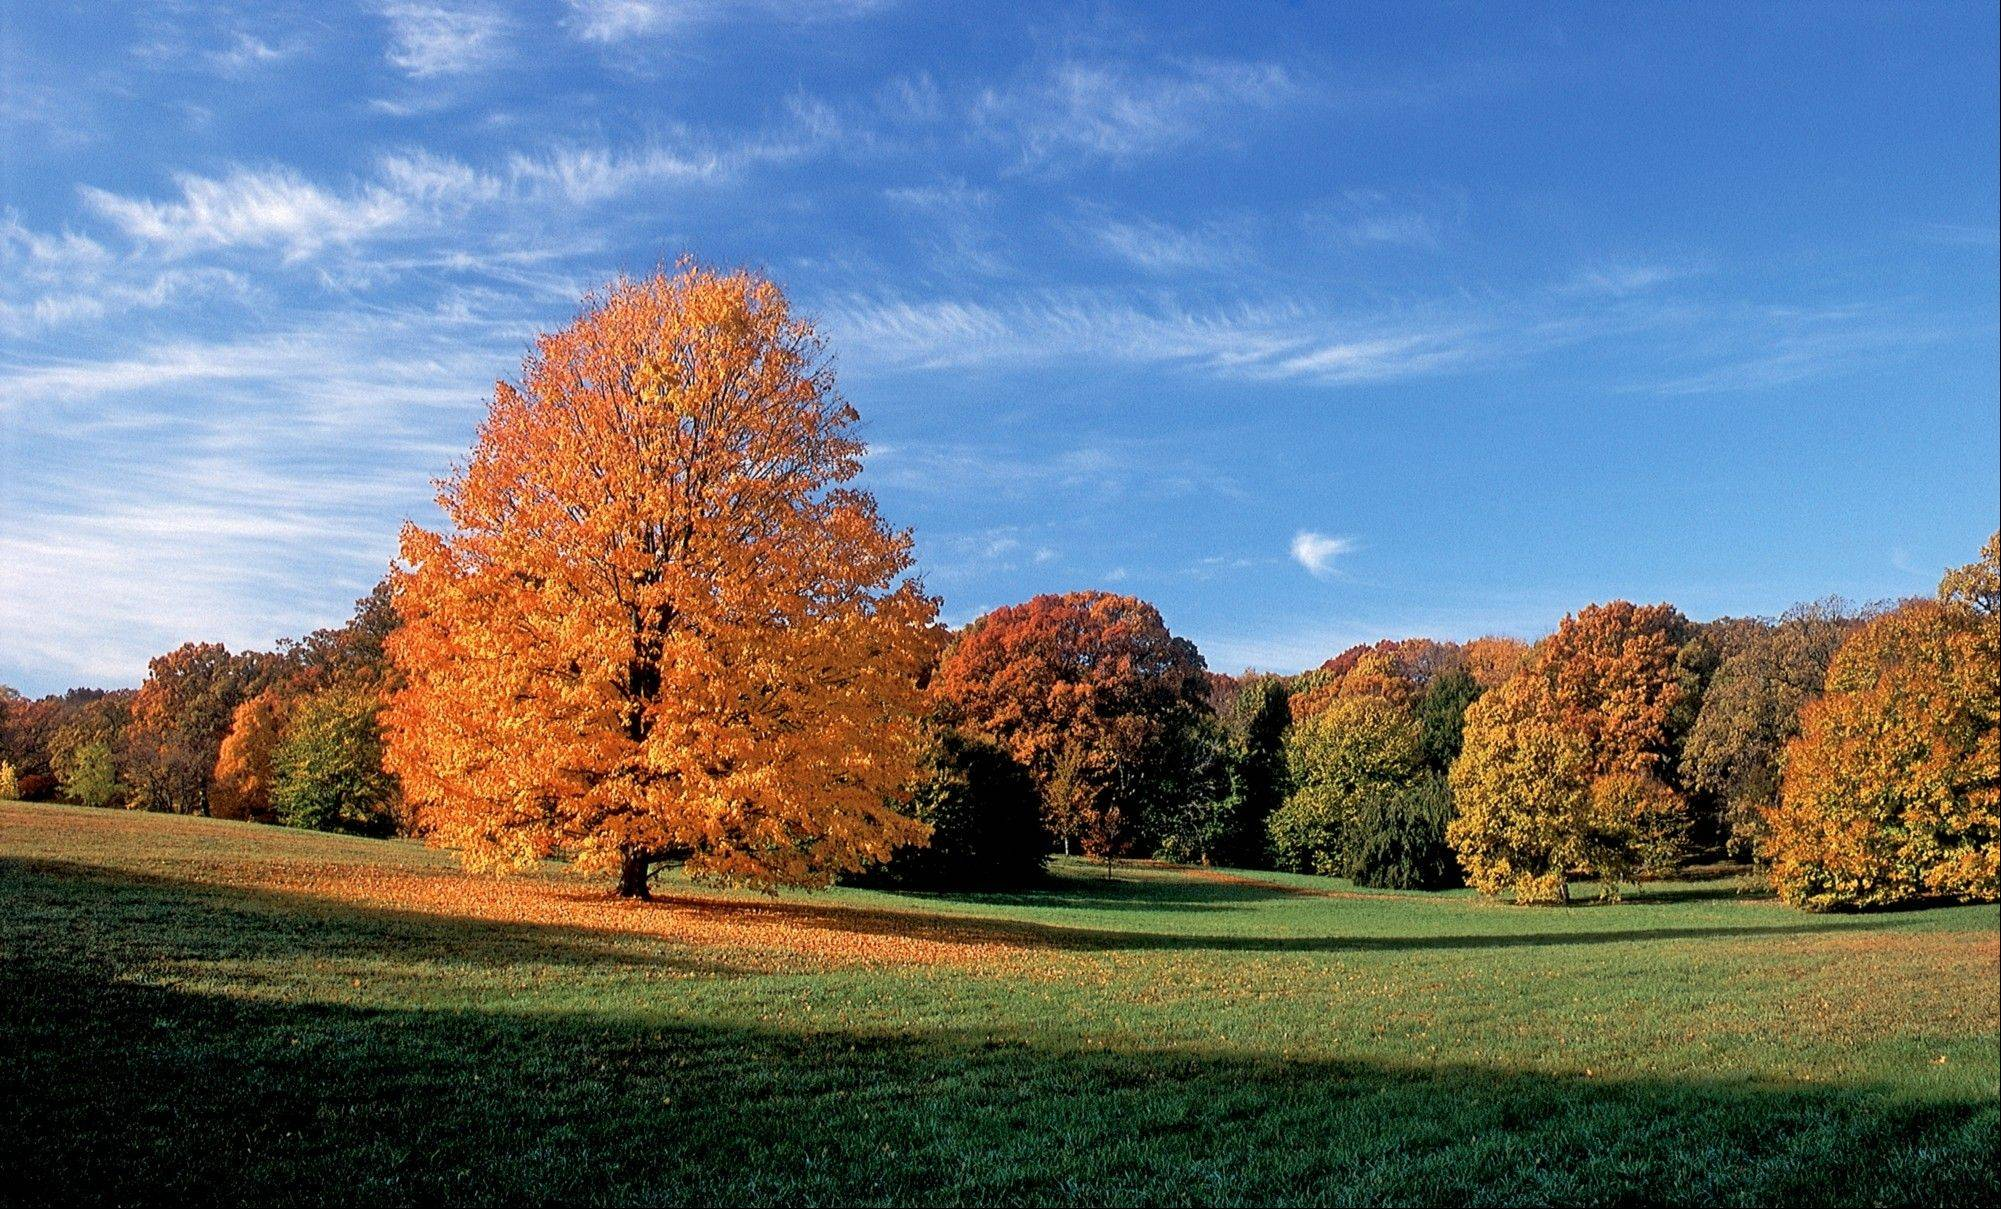 The Morton Arboretum's Fall Color Festival opens Sunday, Sept. 30, and runs through October featuring more than 4,000 types of trees, shrubs and plants.